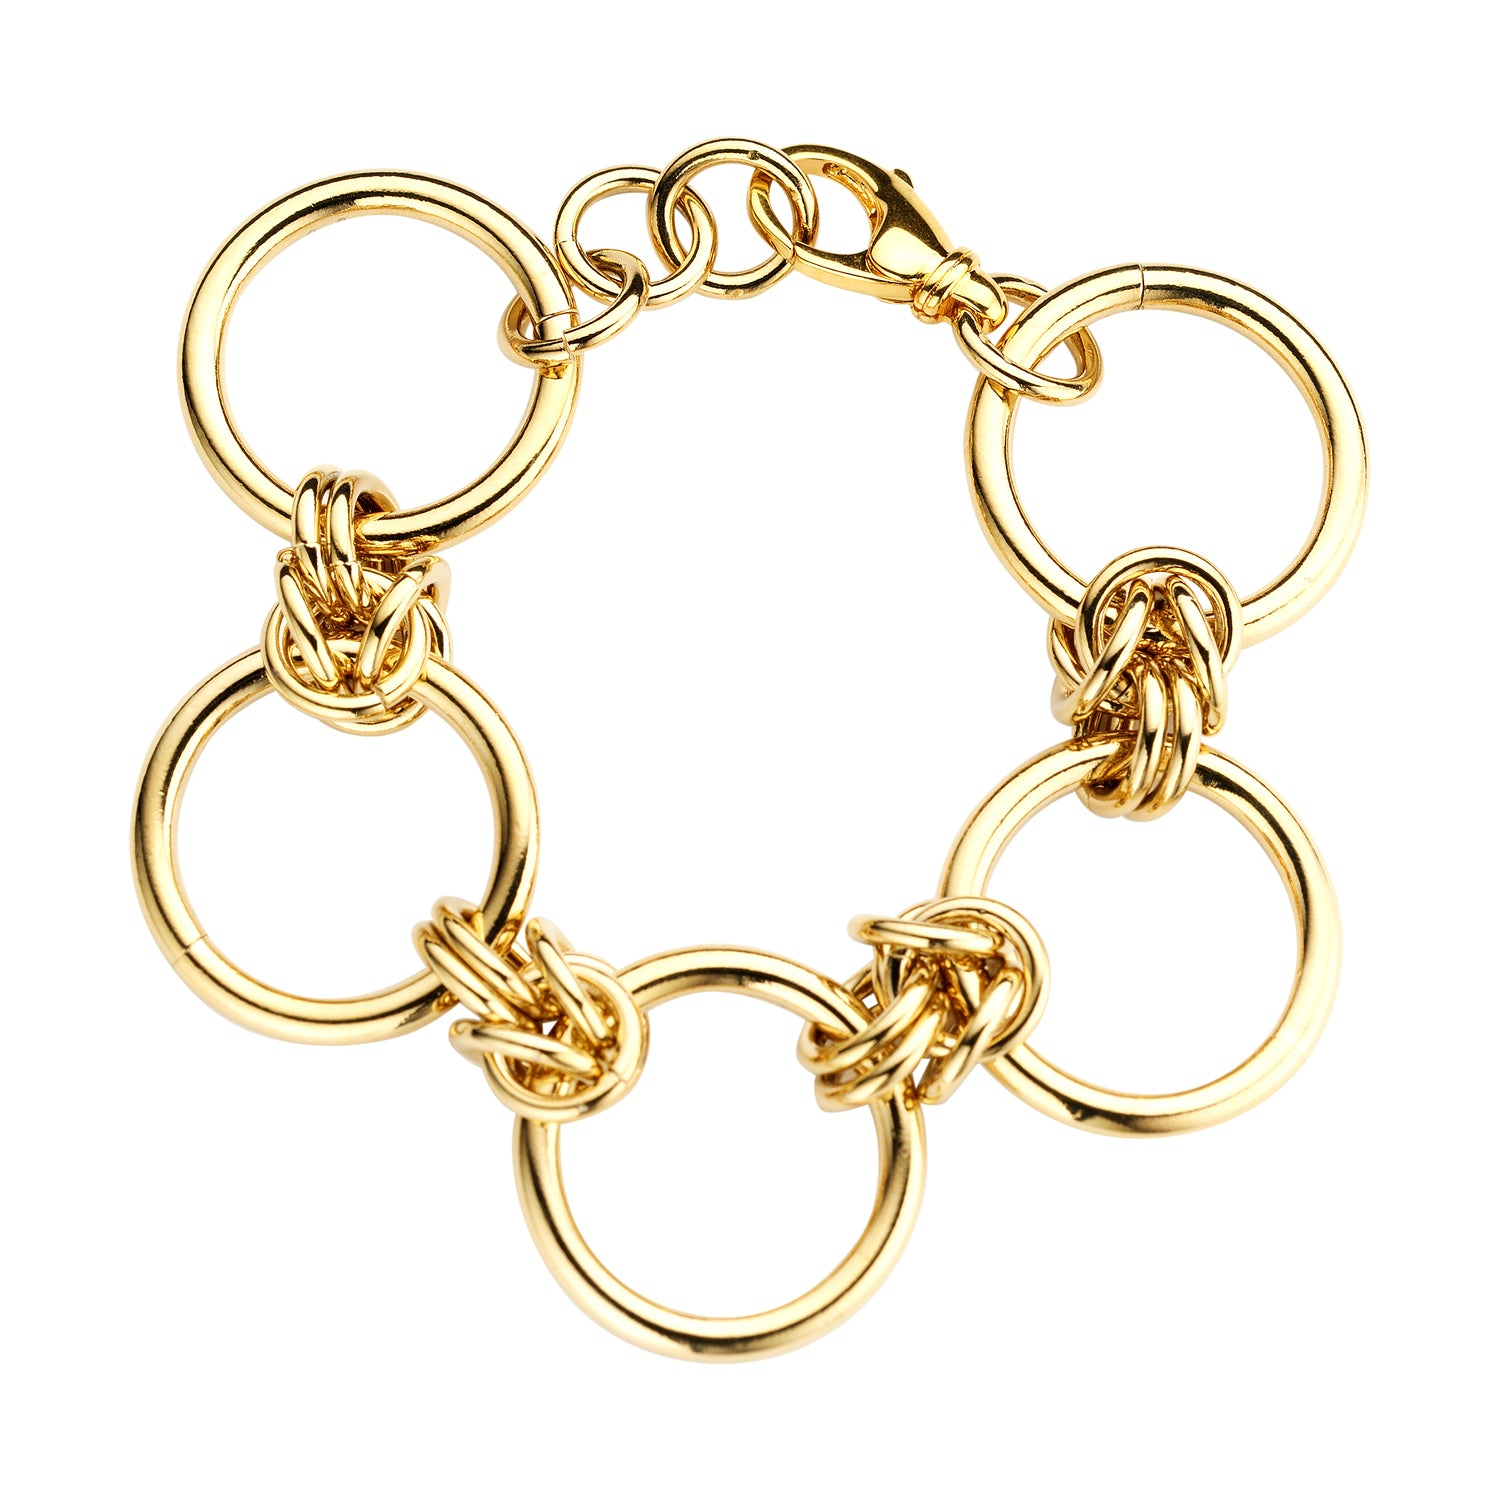 Rounds large chain gold bracelet